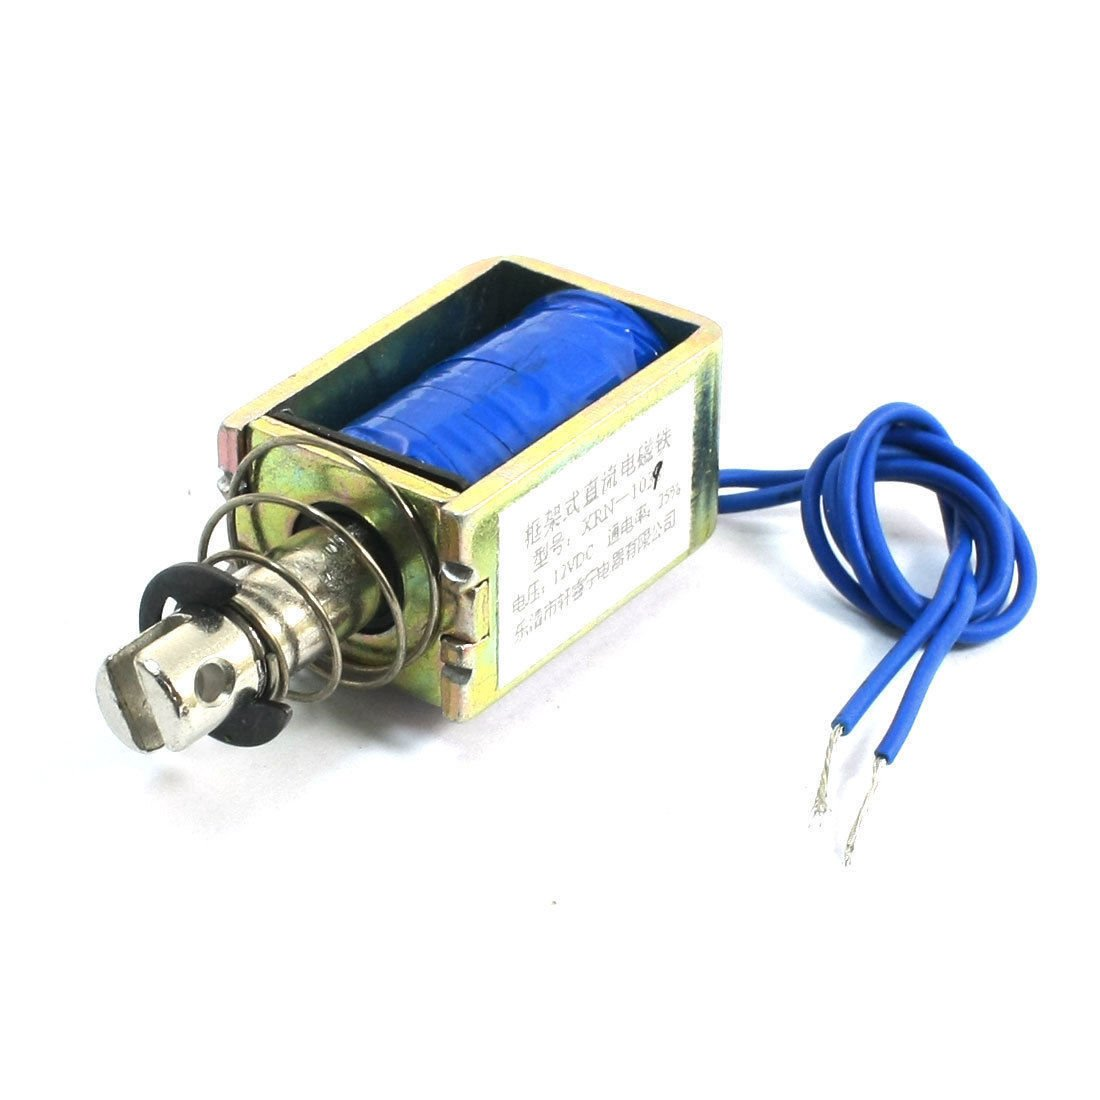 DC 12V 10mm 5Kg Electric Electromagnet Solenoid Open Frame Push Pull